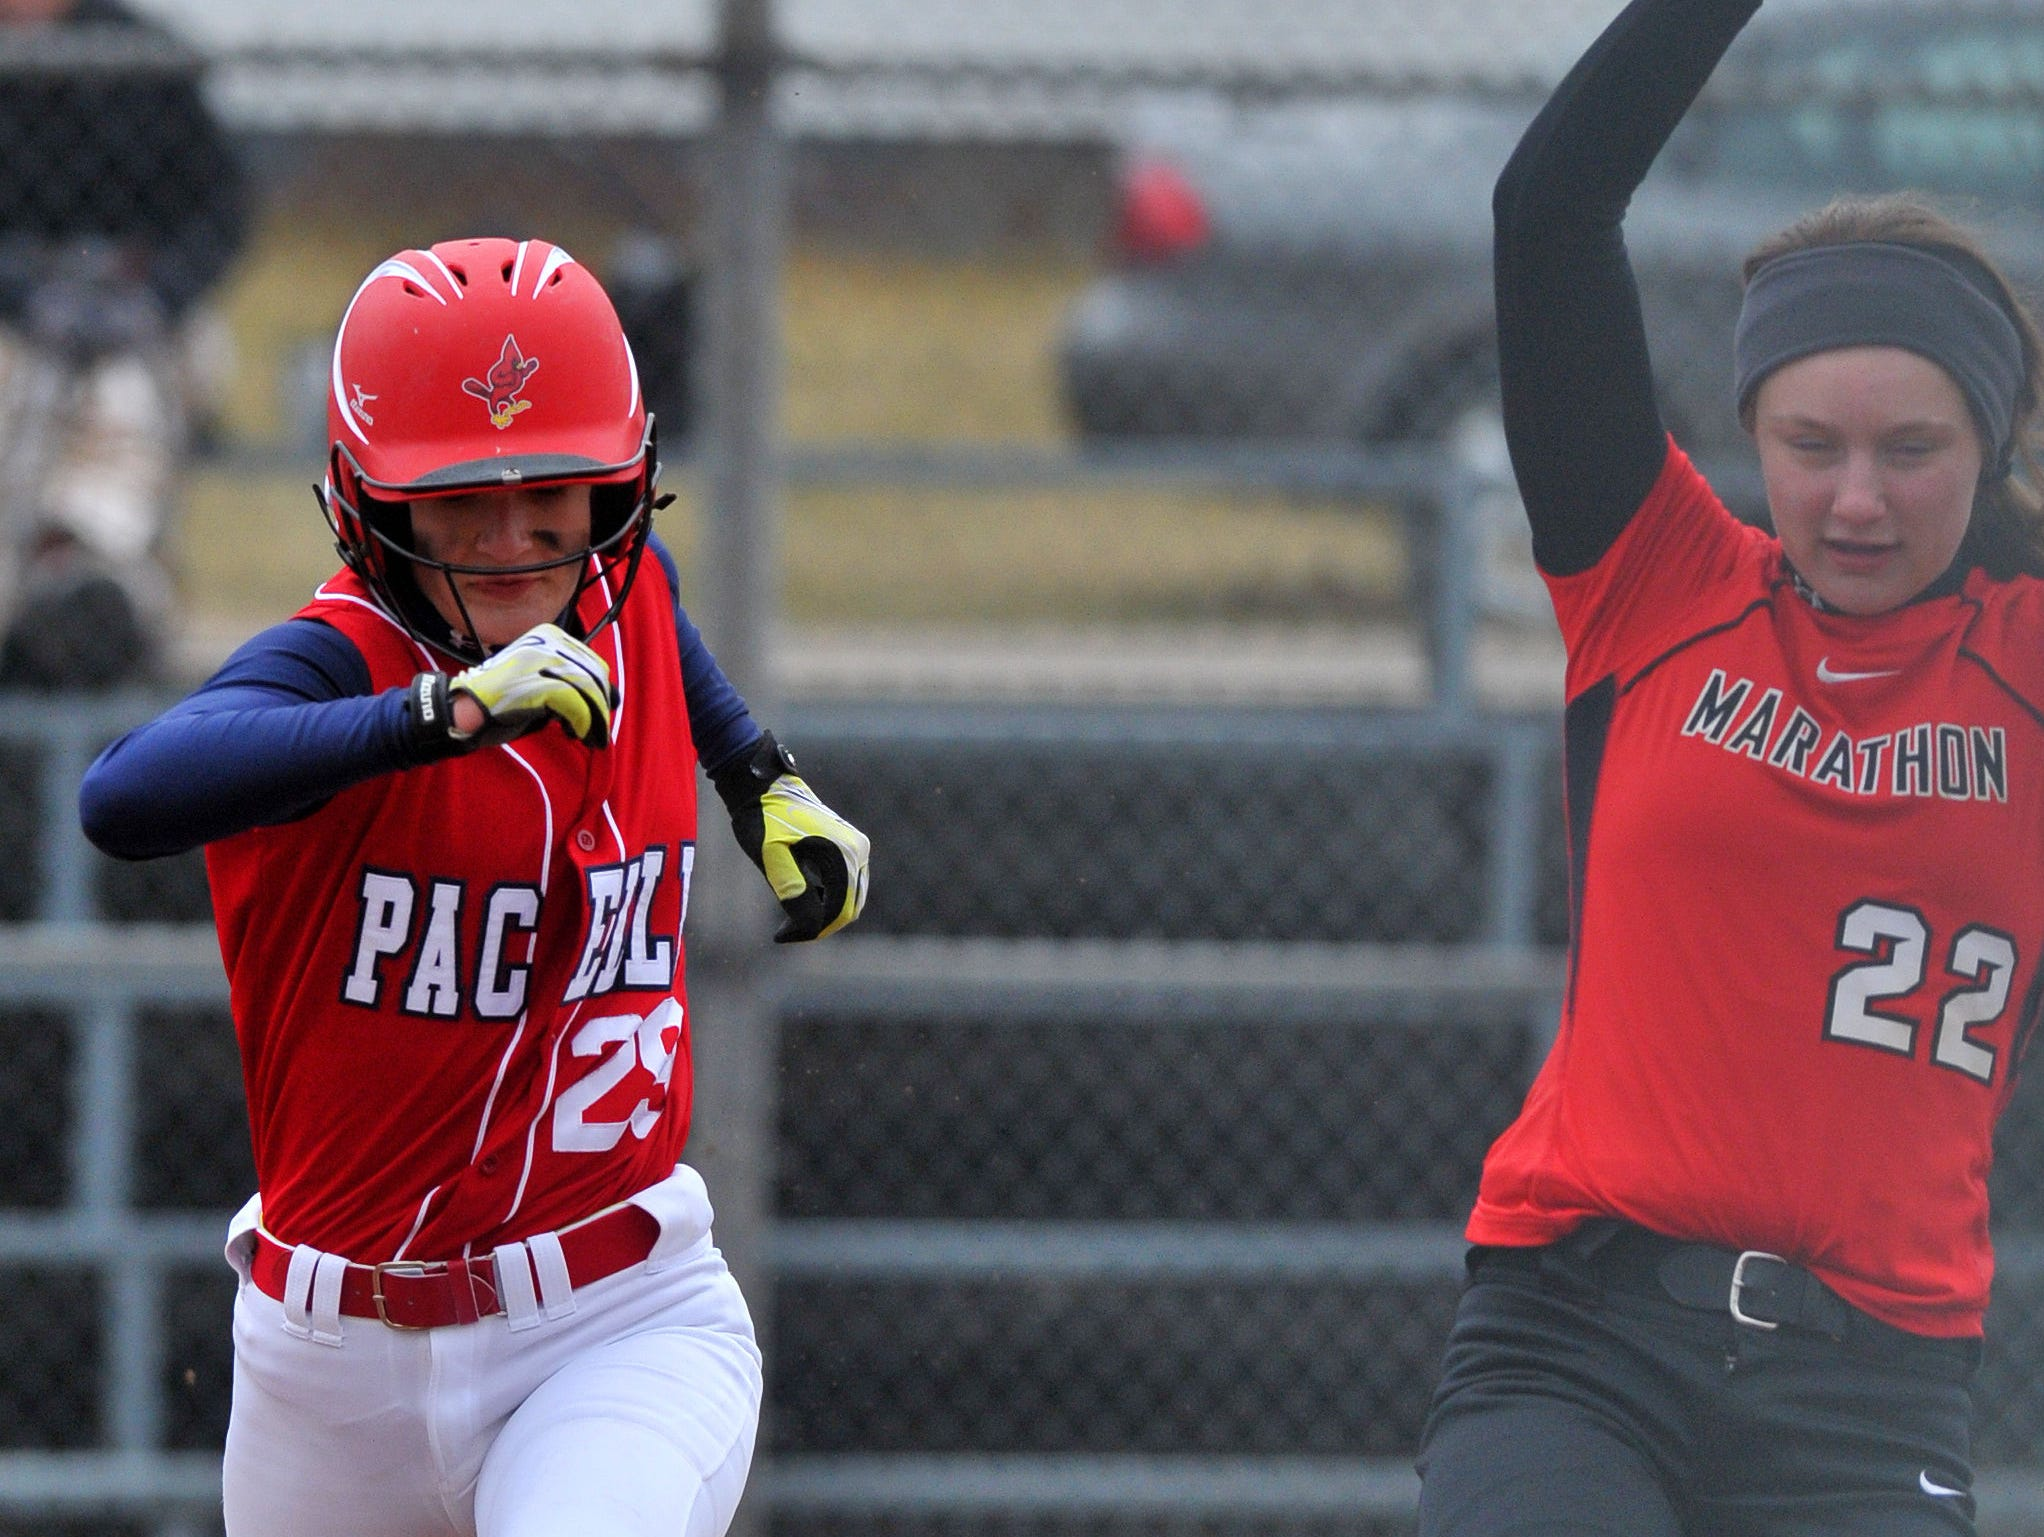 Marathon's Amanda Kind, right, beats Pacelli's Paige Hintz to first base during Monday's nonconference softball game at Marathon.